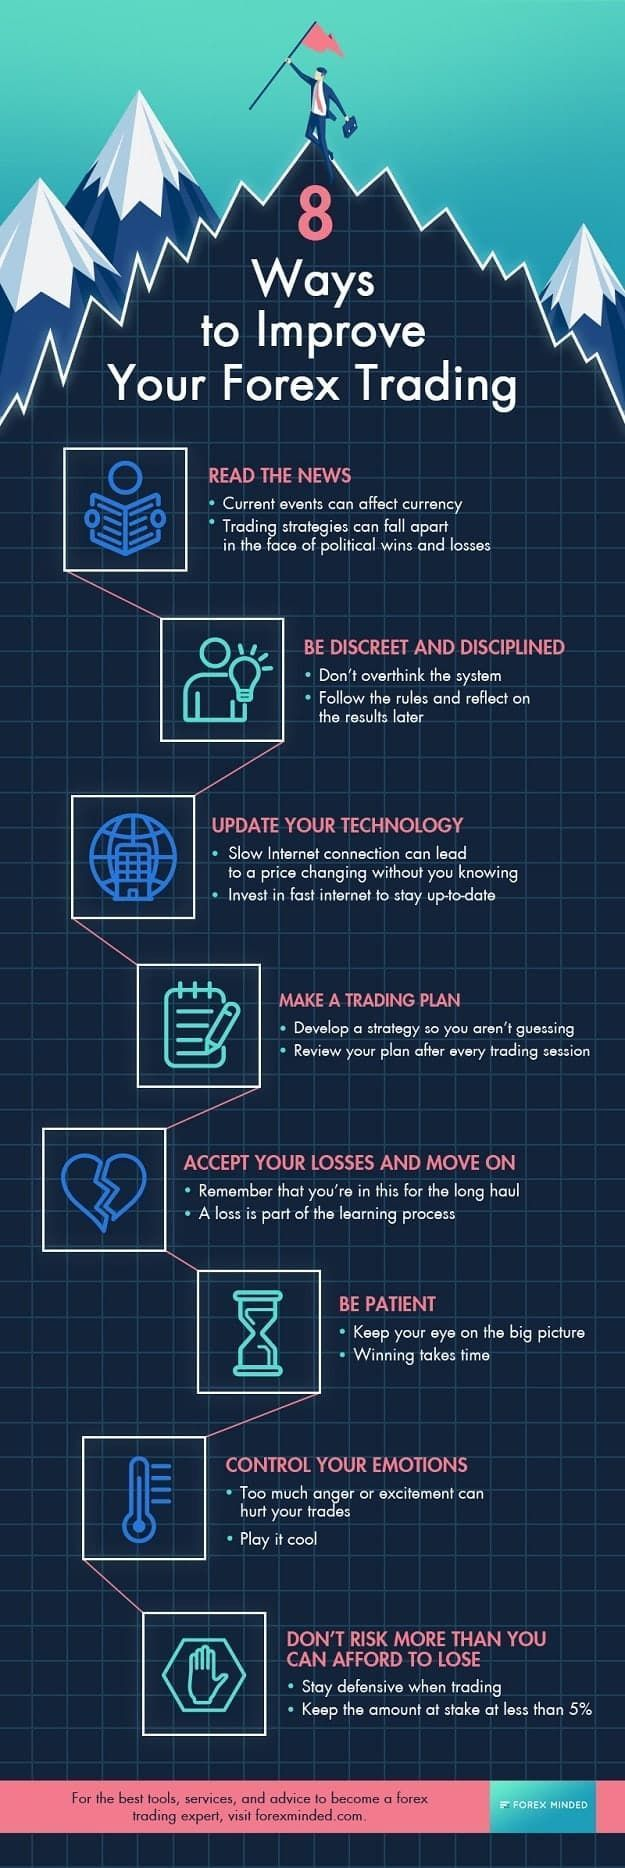 17 best business infographics images on pinterest business forex trading tips easy ways to improve fx trading infographic forex trading takes experience strategy and forex trading education to become successful fandeluxe Gallery